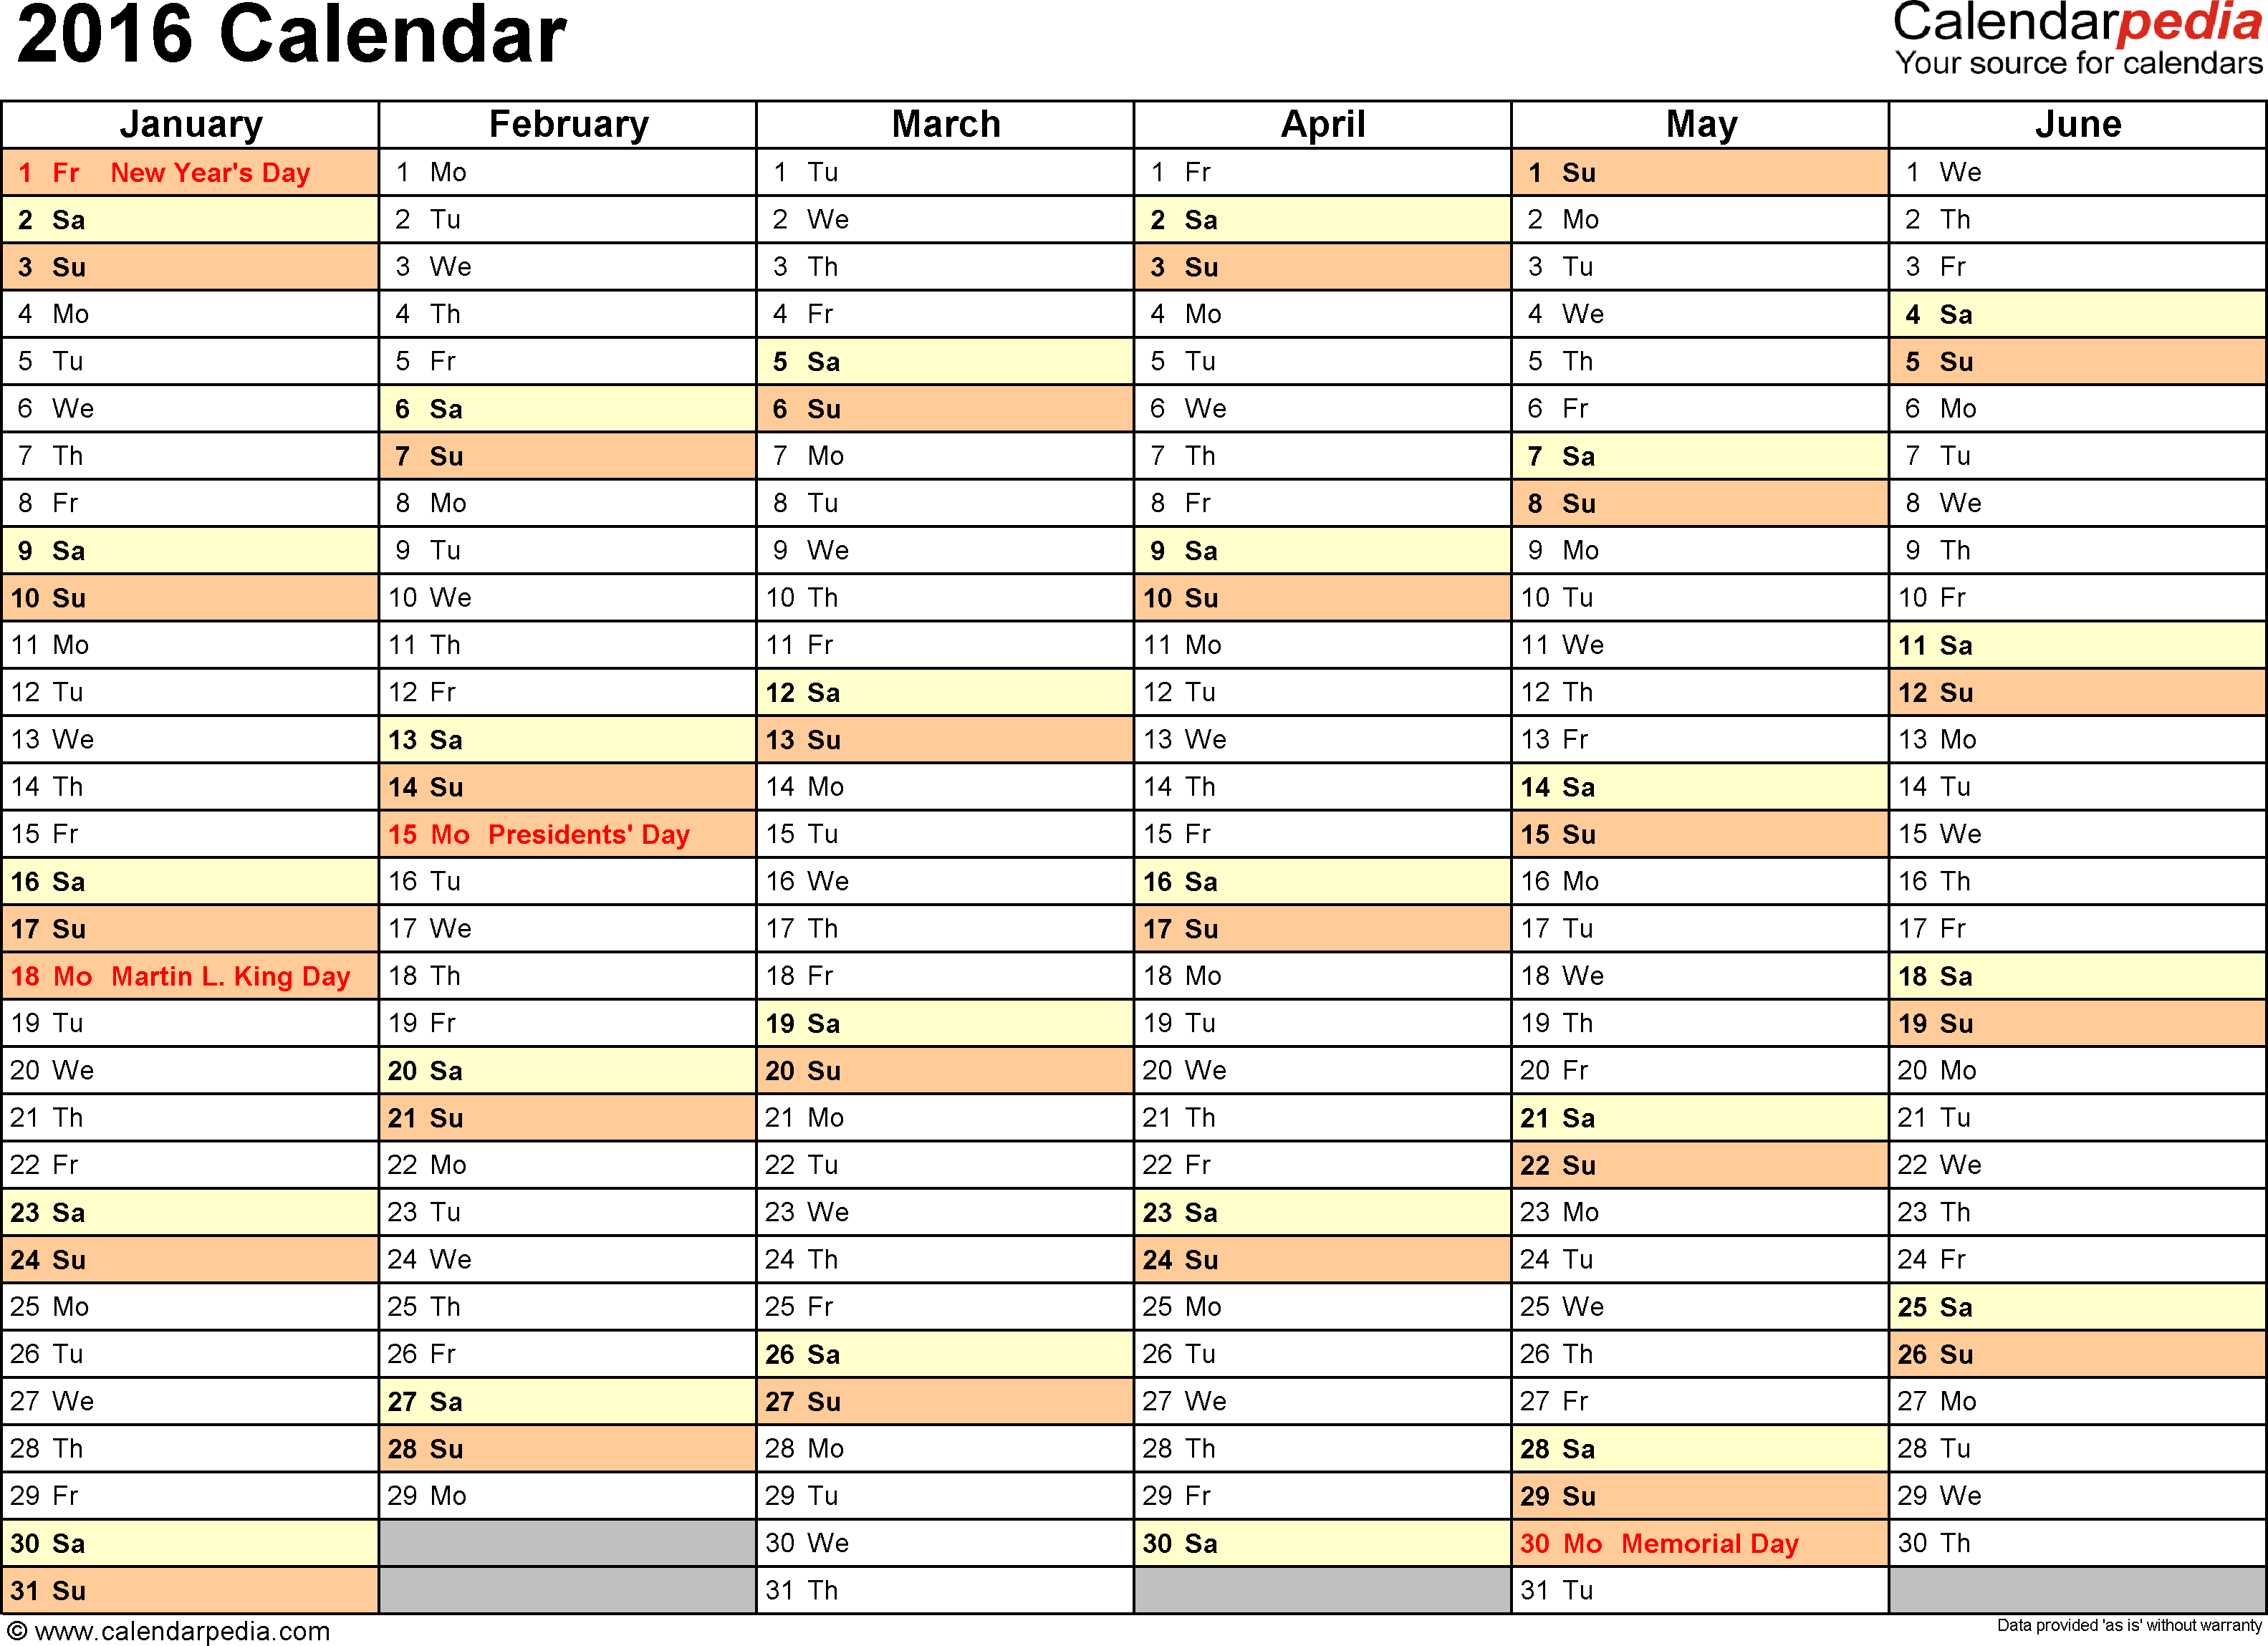 Ediblewildsus  Terrific  Calendar  Download  Free Printable Excel Templates Xls With Foxy Template   Calendar For Excel Months Horizontally  Pages Landscape Orientation With Divine How To Do Excel Graphs Also Excel Index Reference In Addition Excel Is Functions And Ttest On Excel As Well As Convert Excel To Database Additionally Excel Date Day Of Week From Calendarpediacom With Ediblewildsus  Foxy  Calendar  Download  Free Printable Excel Templates Xls With Divine Template   Calendar For Excel Months Horizontally  Pages Landscape Orientation And Terrific How To Do Excel Graphs Also Excel Index Reference In Addition Excel Is Functions From Calendarpediacom